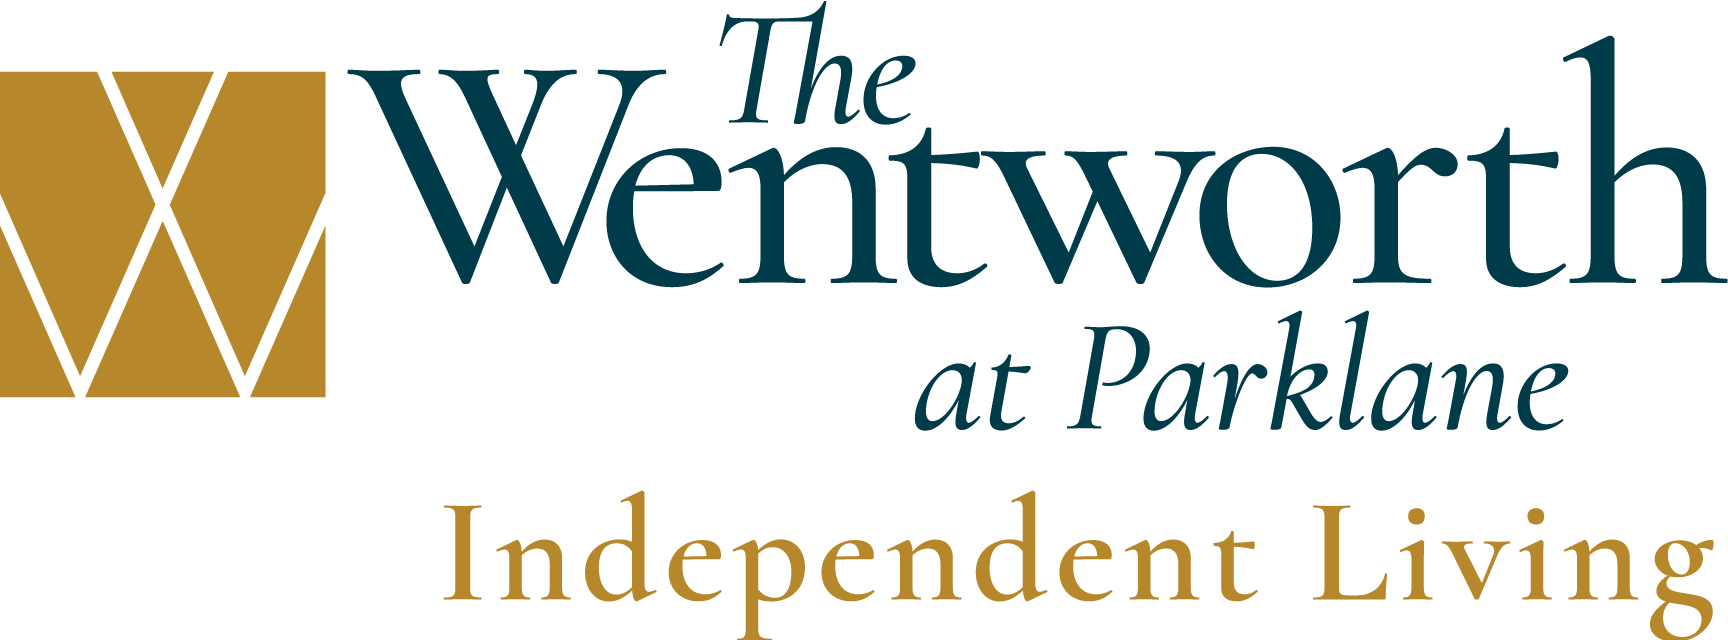 The Wentworth at Parklane